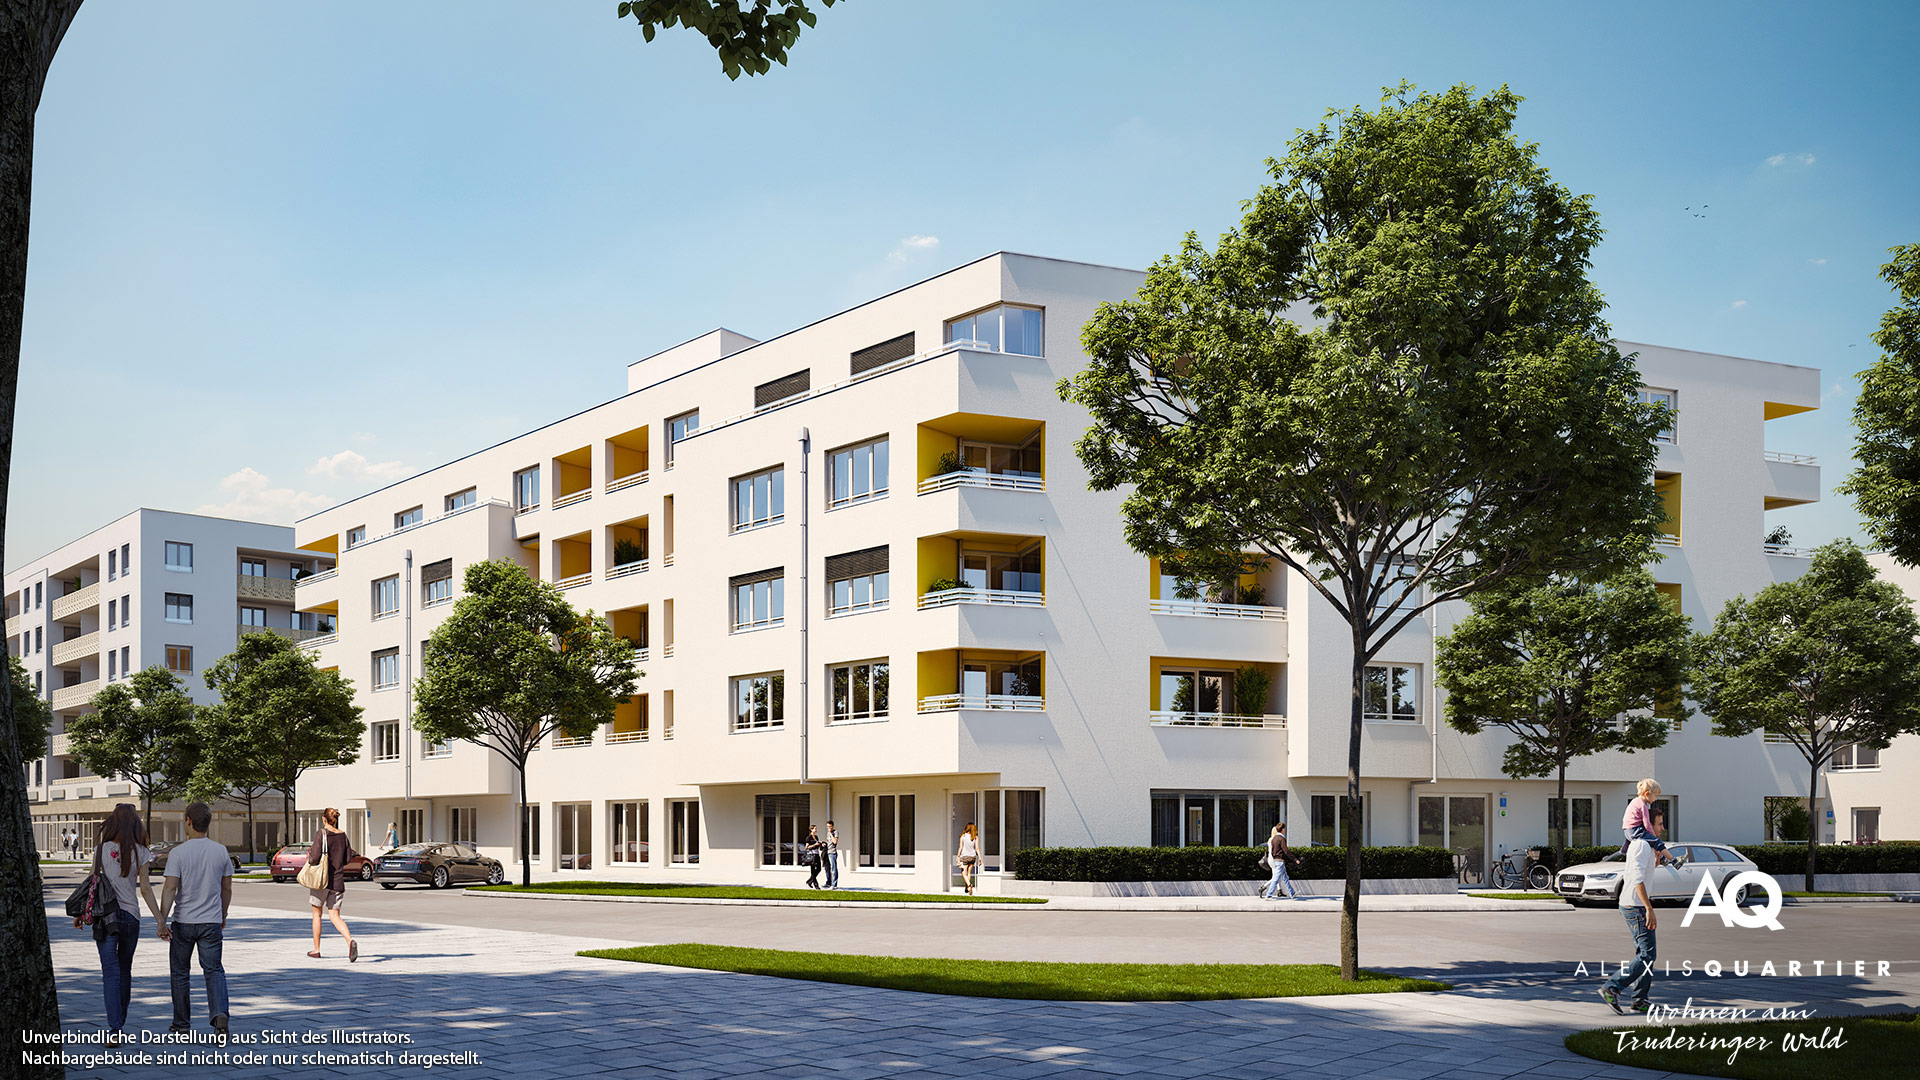 Property Alexisquartier - Wohnen am Truderinger Wald - commercial units - Illustration 1